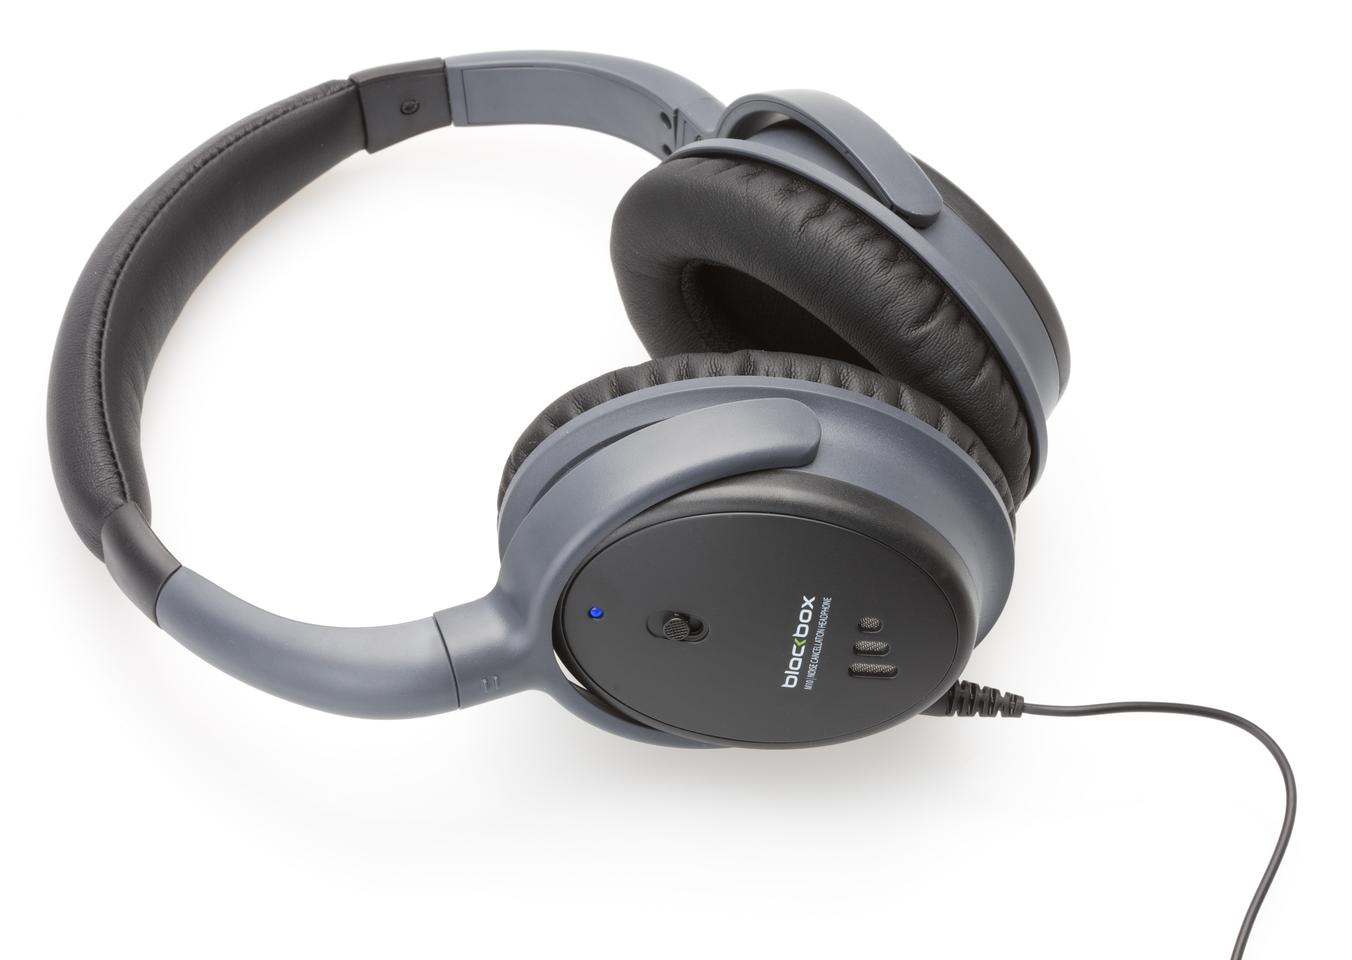 The BlackBox M10 circum-aural headphones with Active Noise Rejection technology